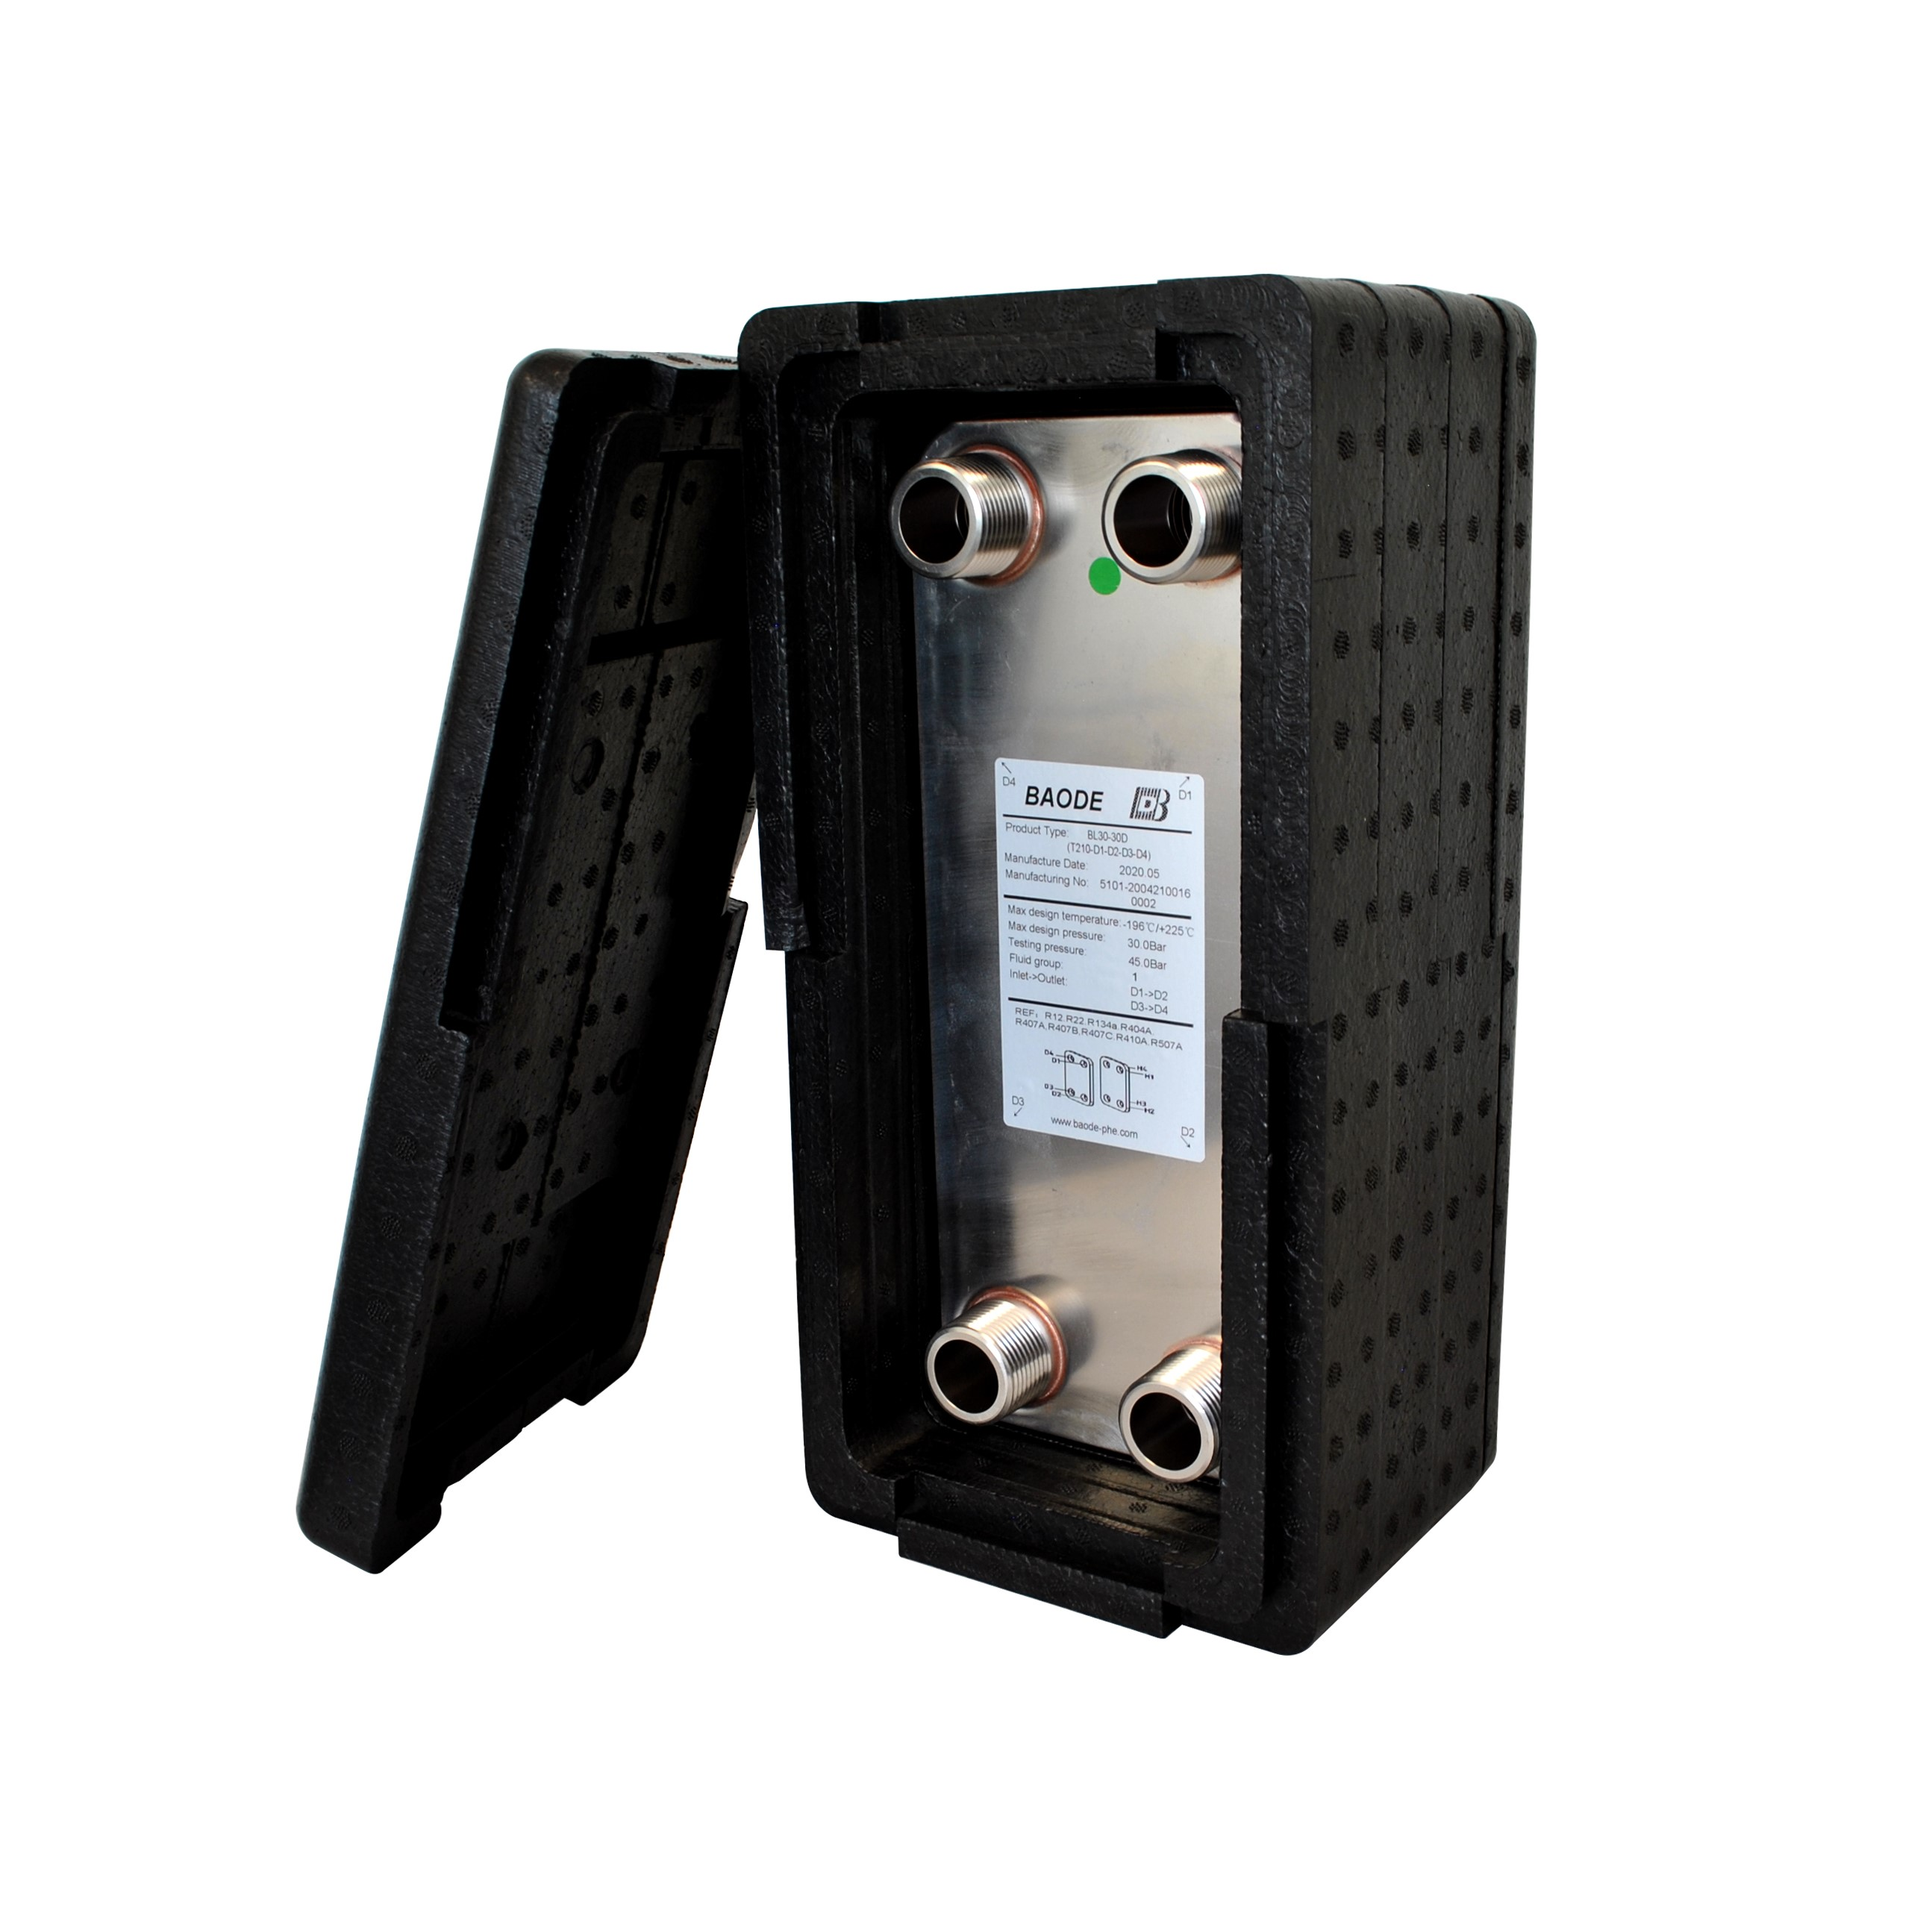 Baode BL26C-30 plate heat exchanger with insulation